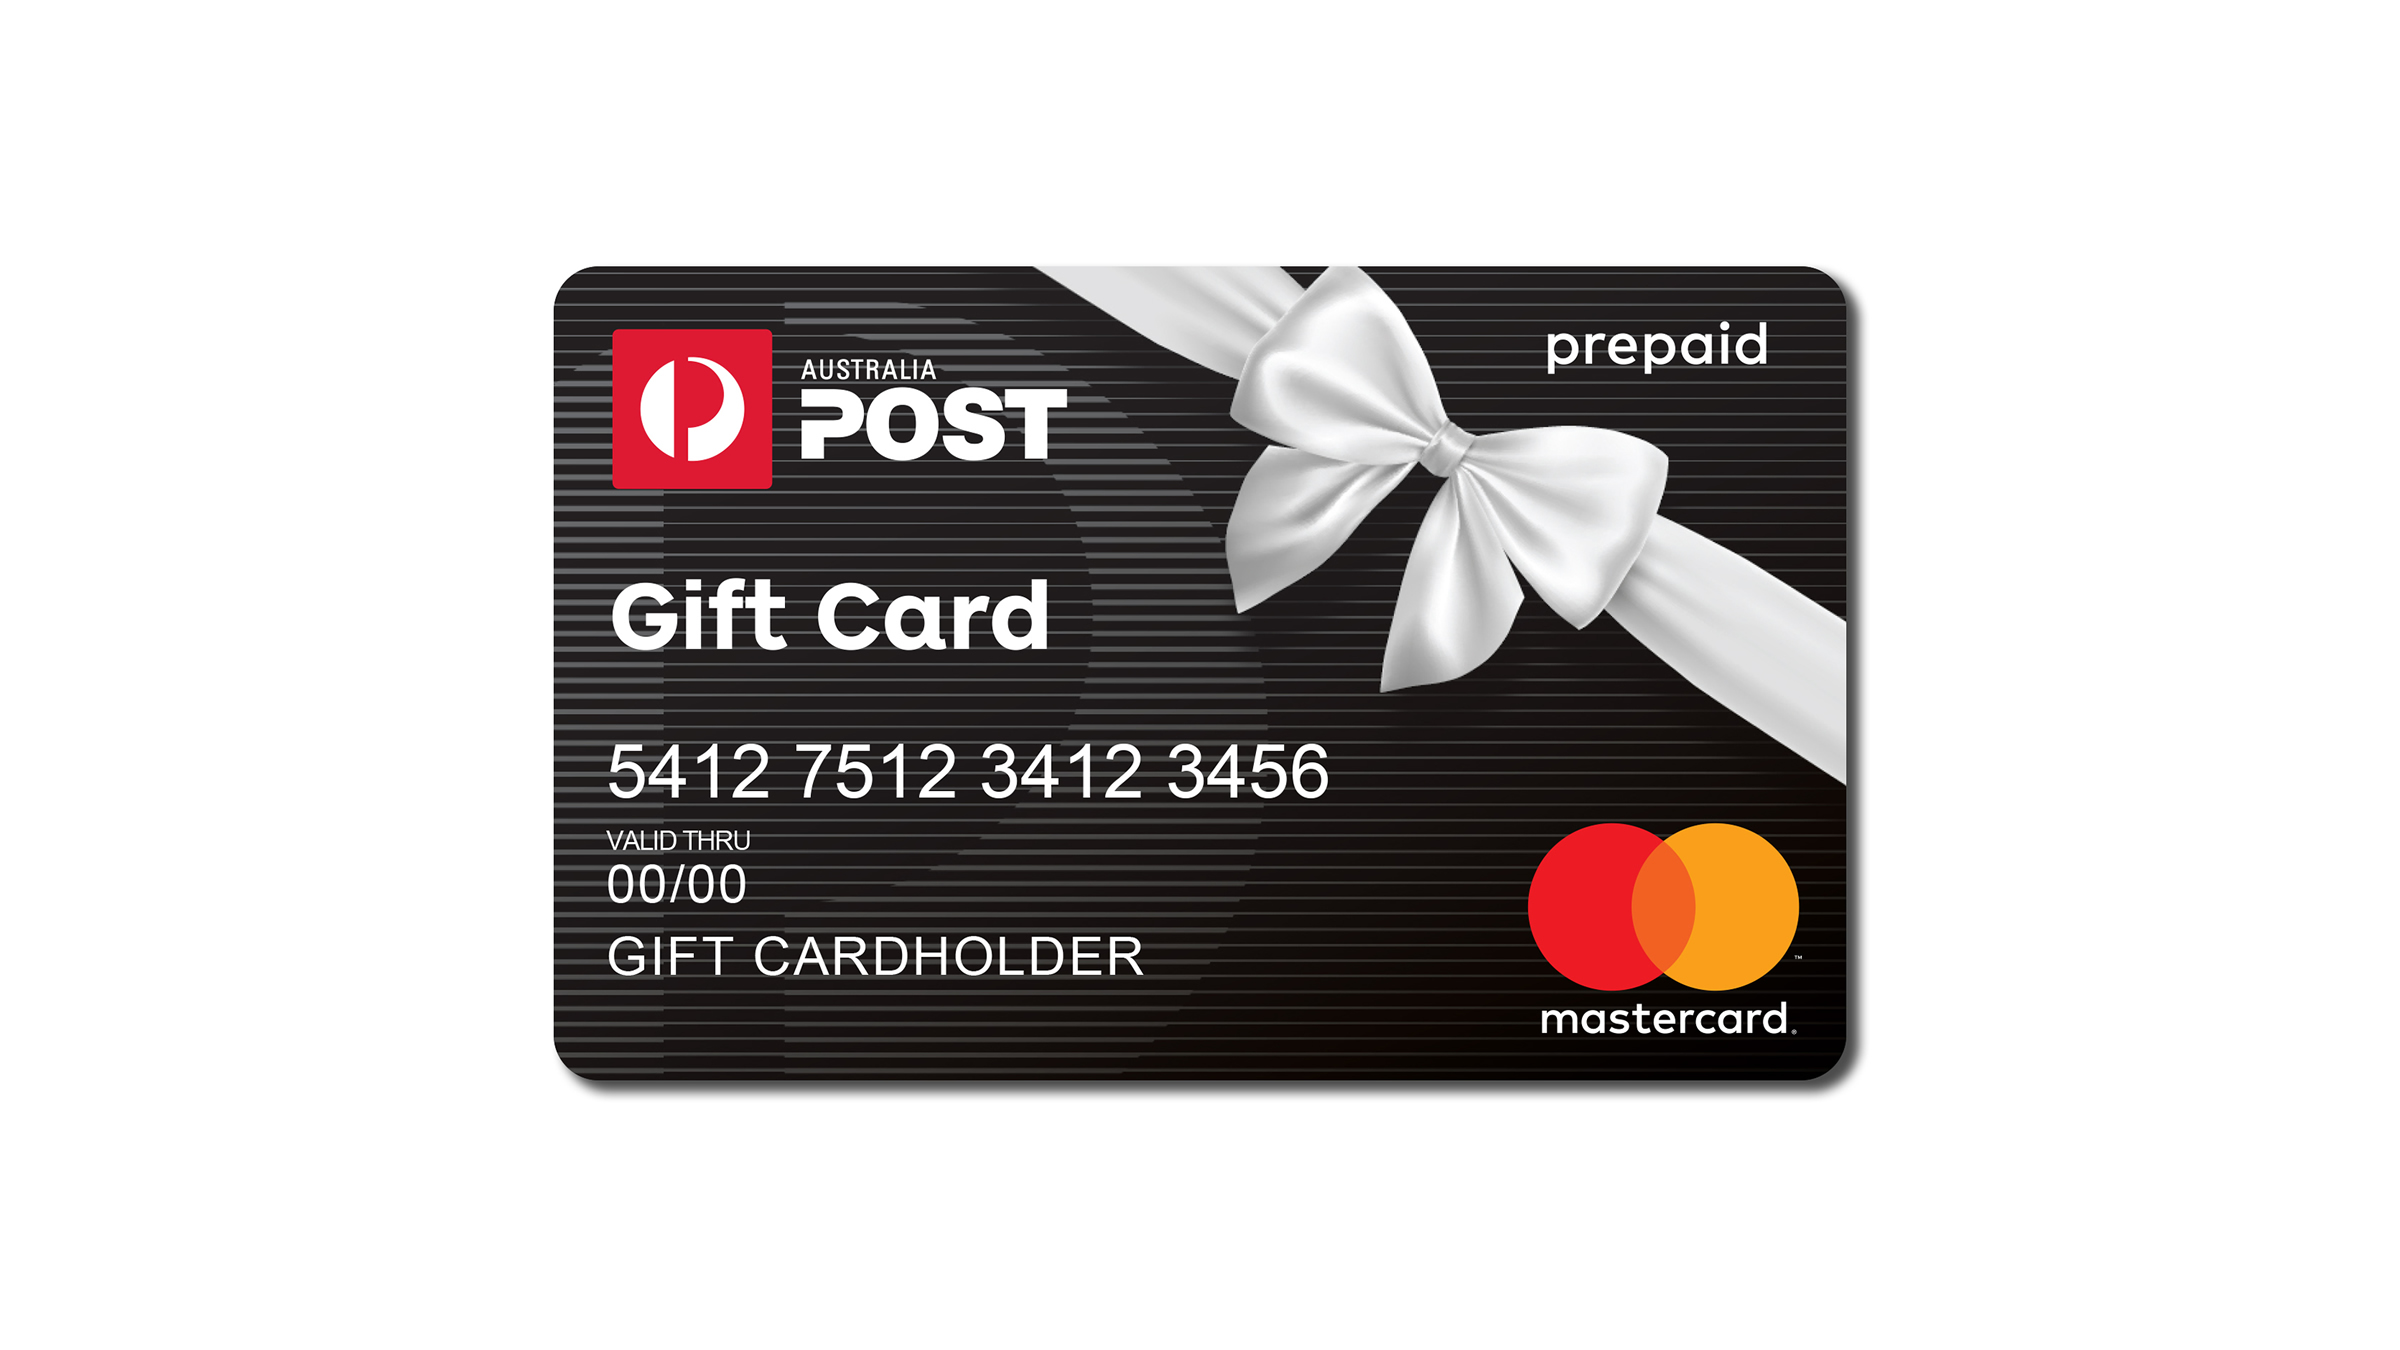 prepaid Visa gift card online photo - 1